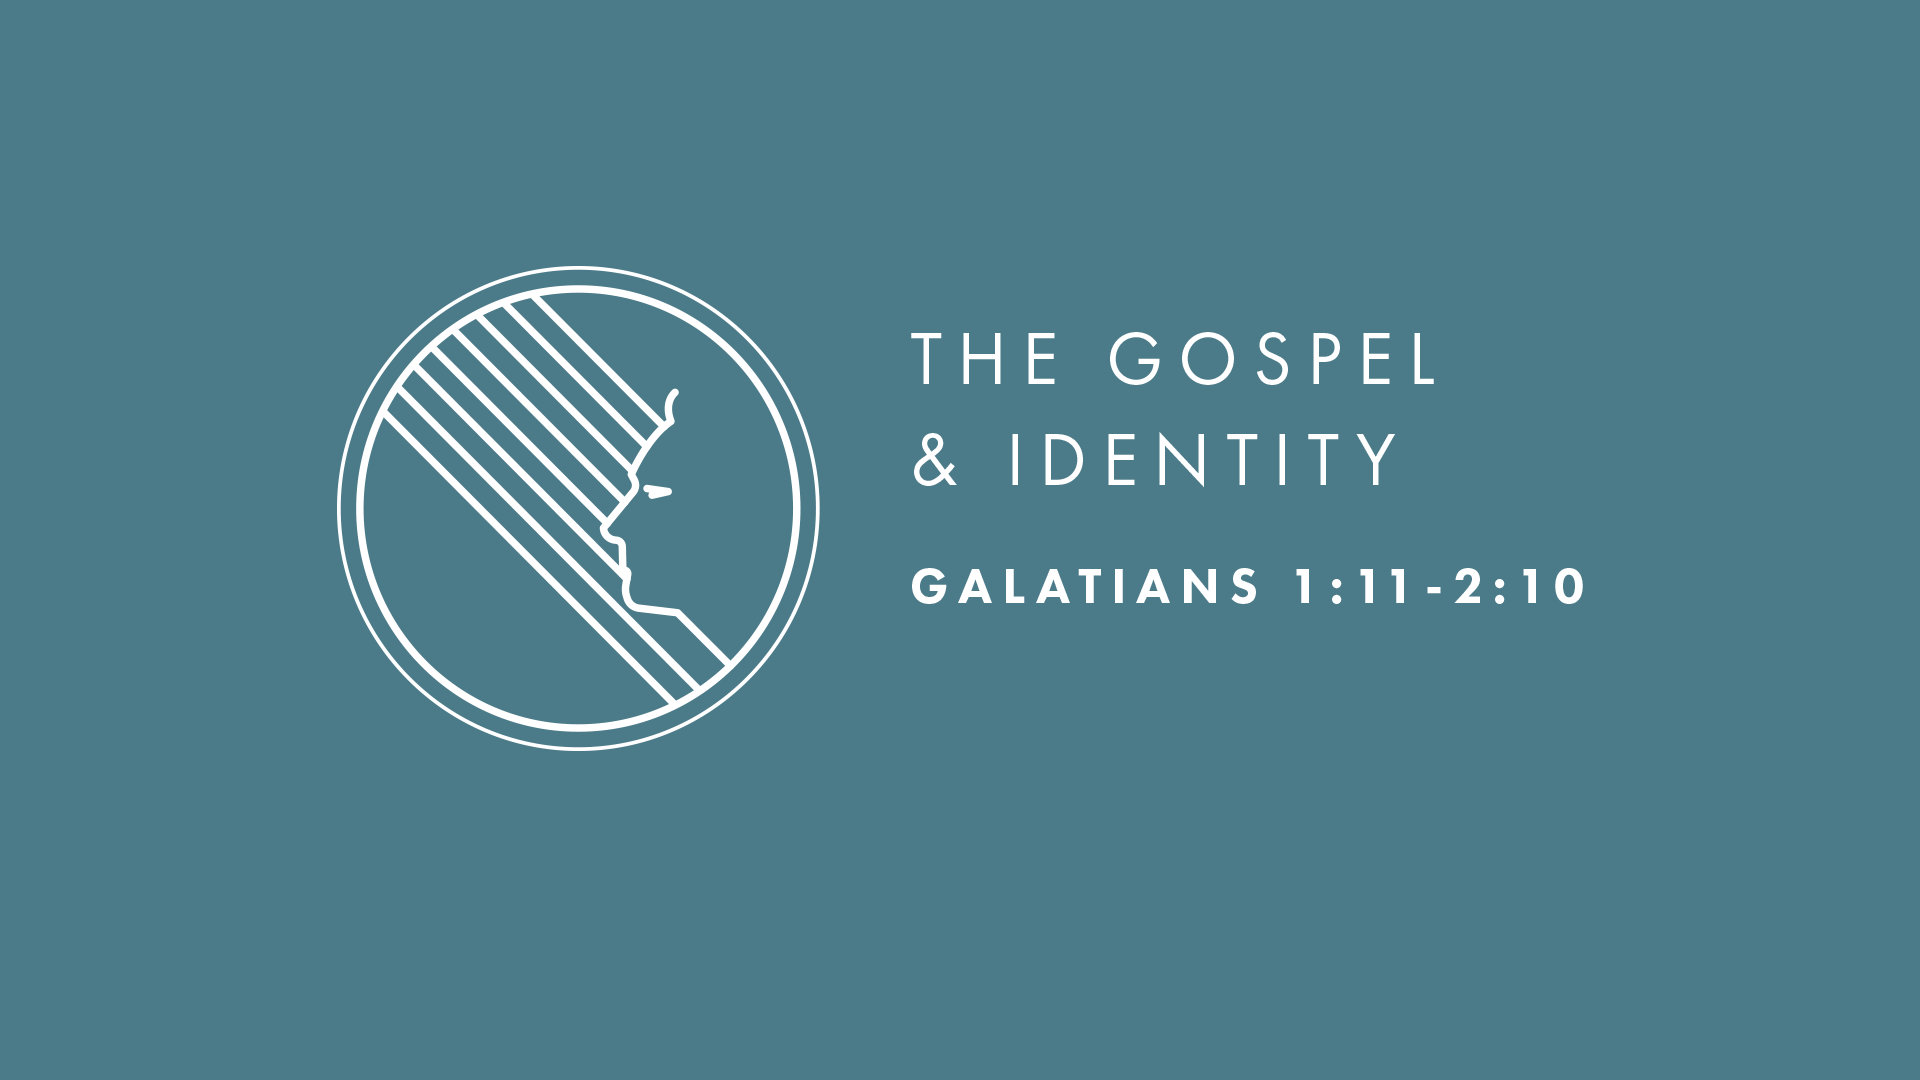 The Gospel and Identity